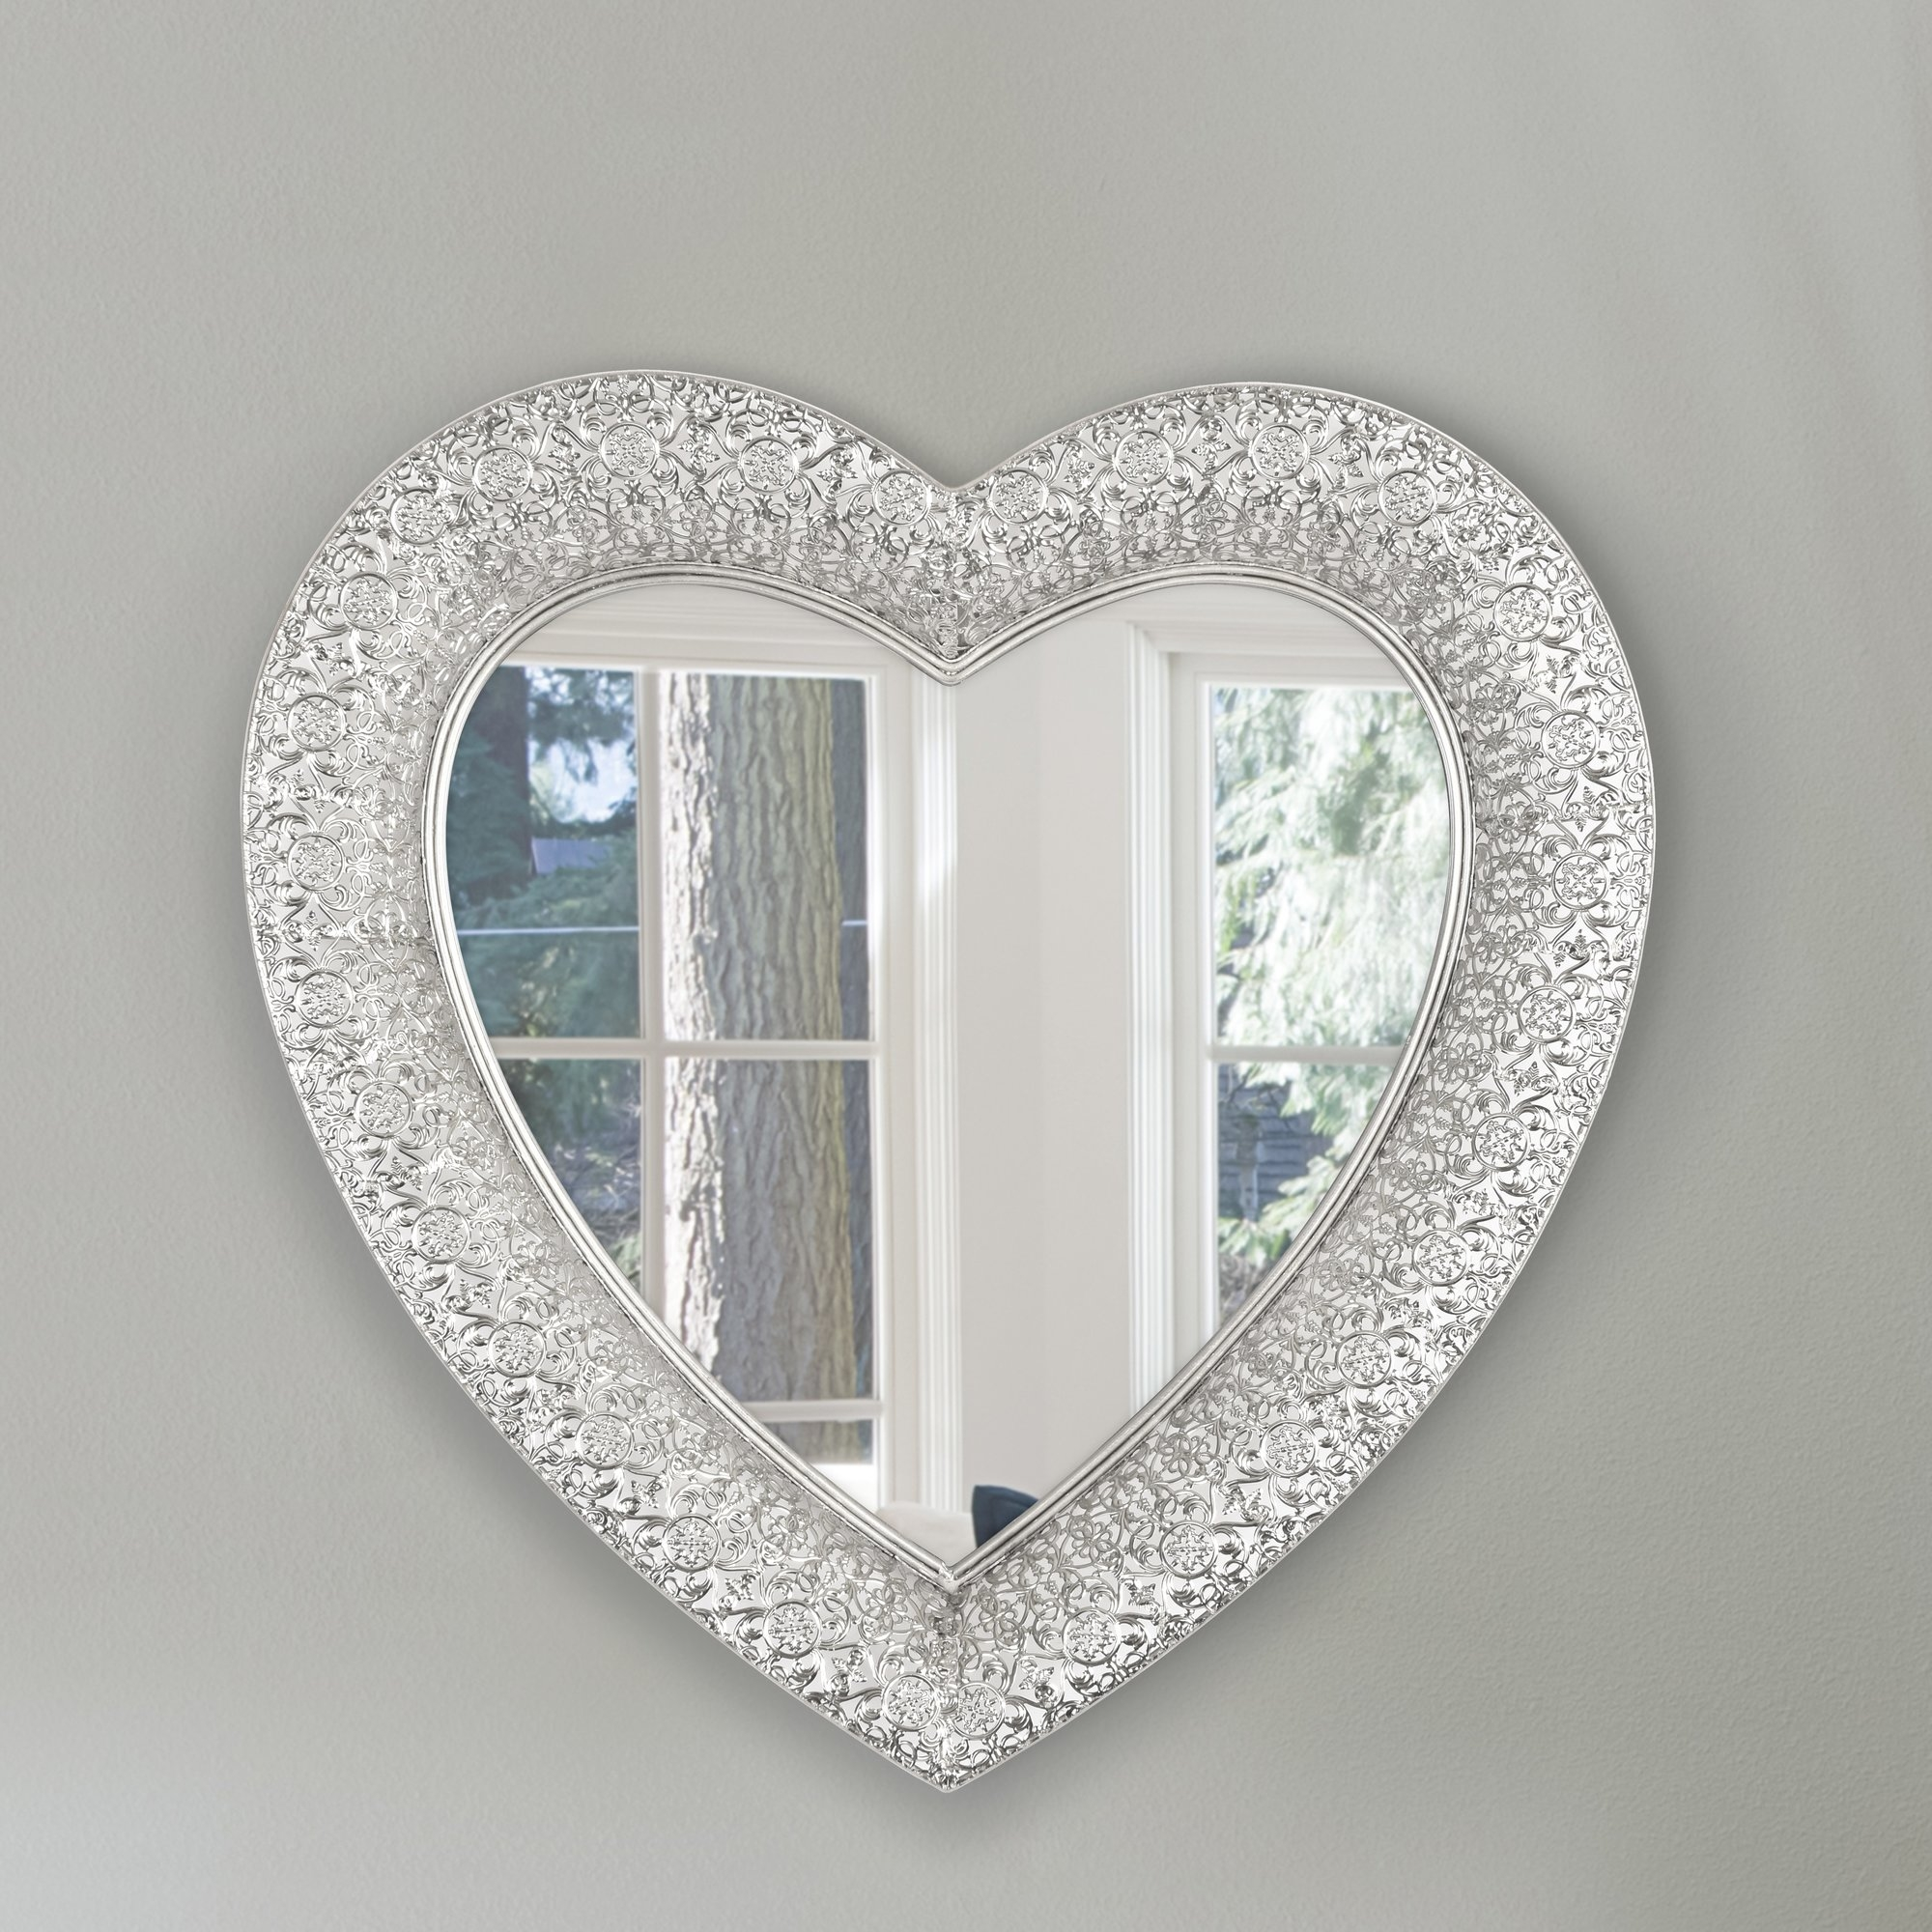 Selections Chaumont Marrakesh Heart Wall Mirror Reviews Wayfair In Heart Wall Mirror (Image 12 of 15)